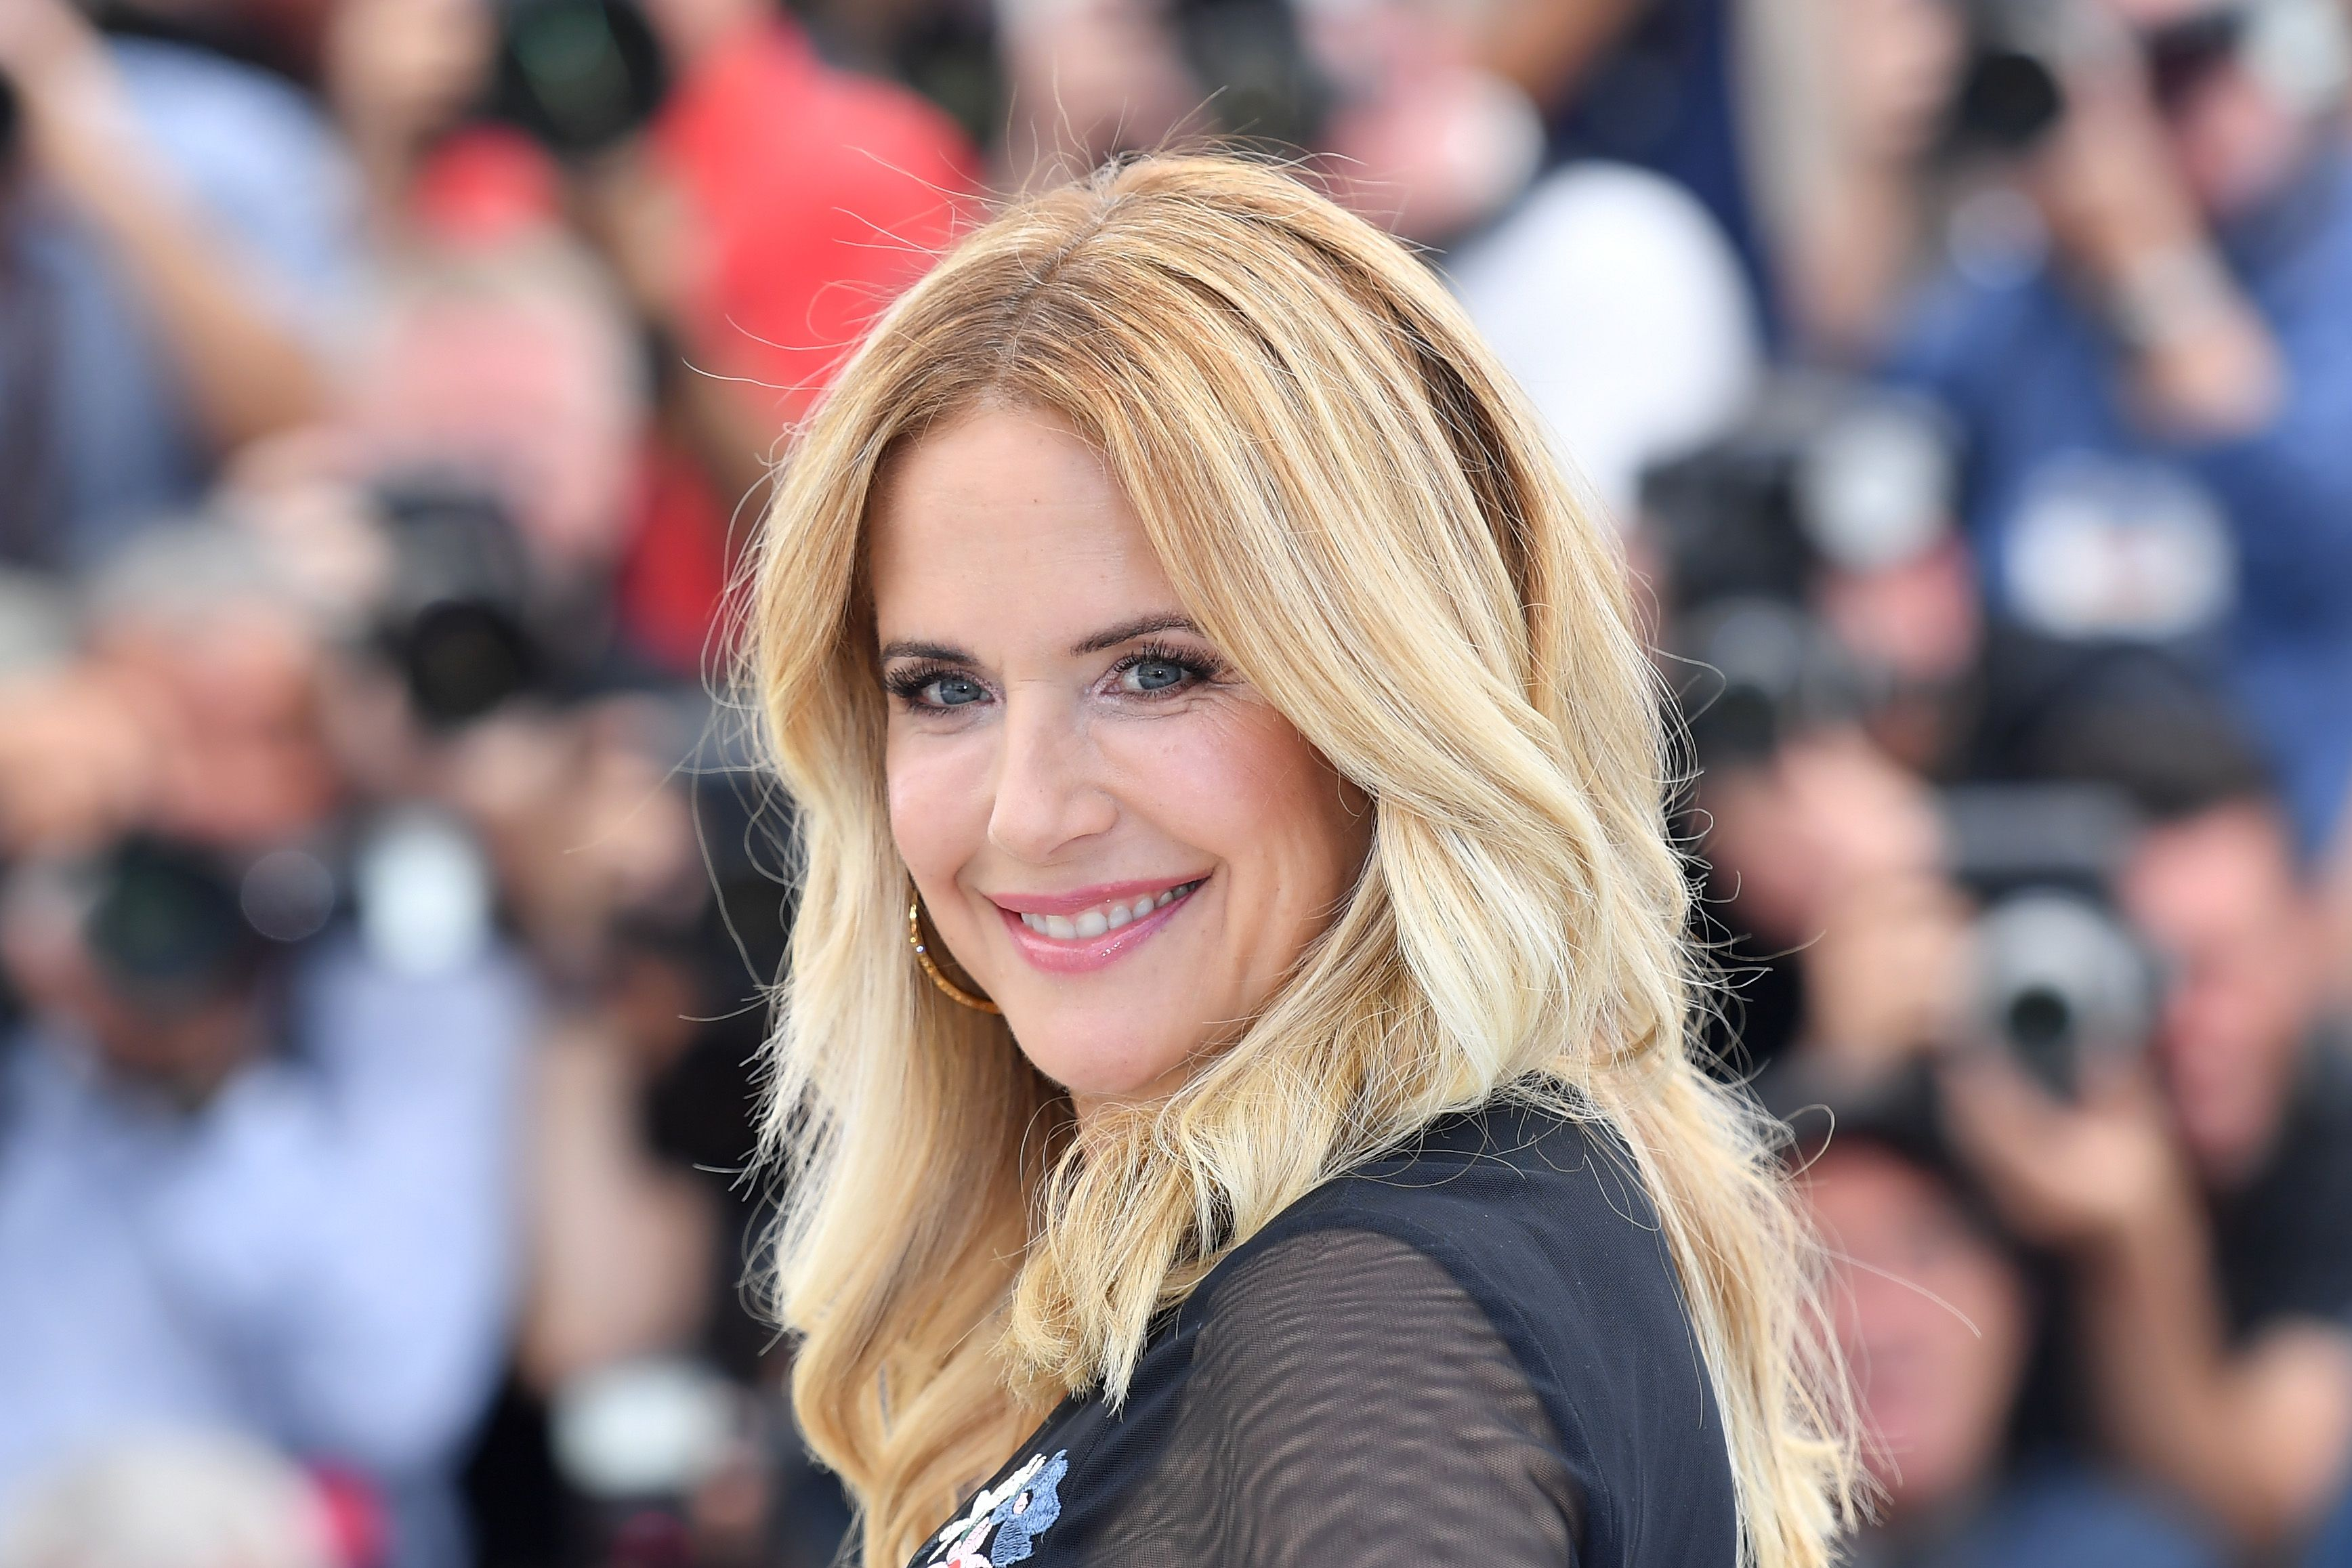 Kelly Preston at the 71st annual Cannes Film Festival in 2018 in Cannes, France | Source: Getty Images